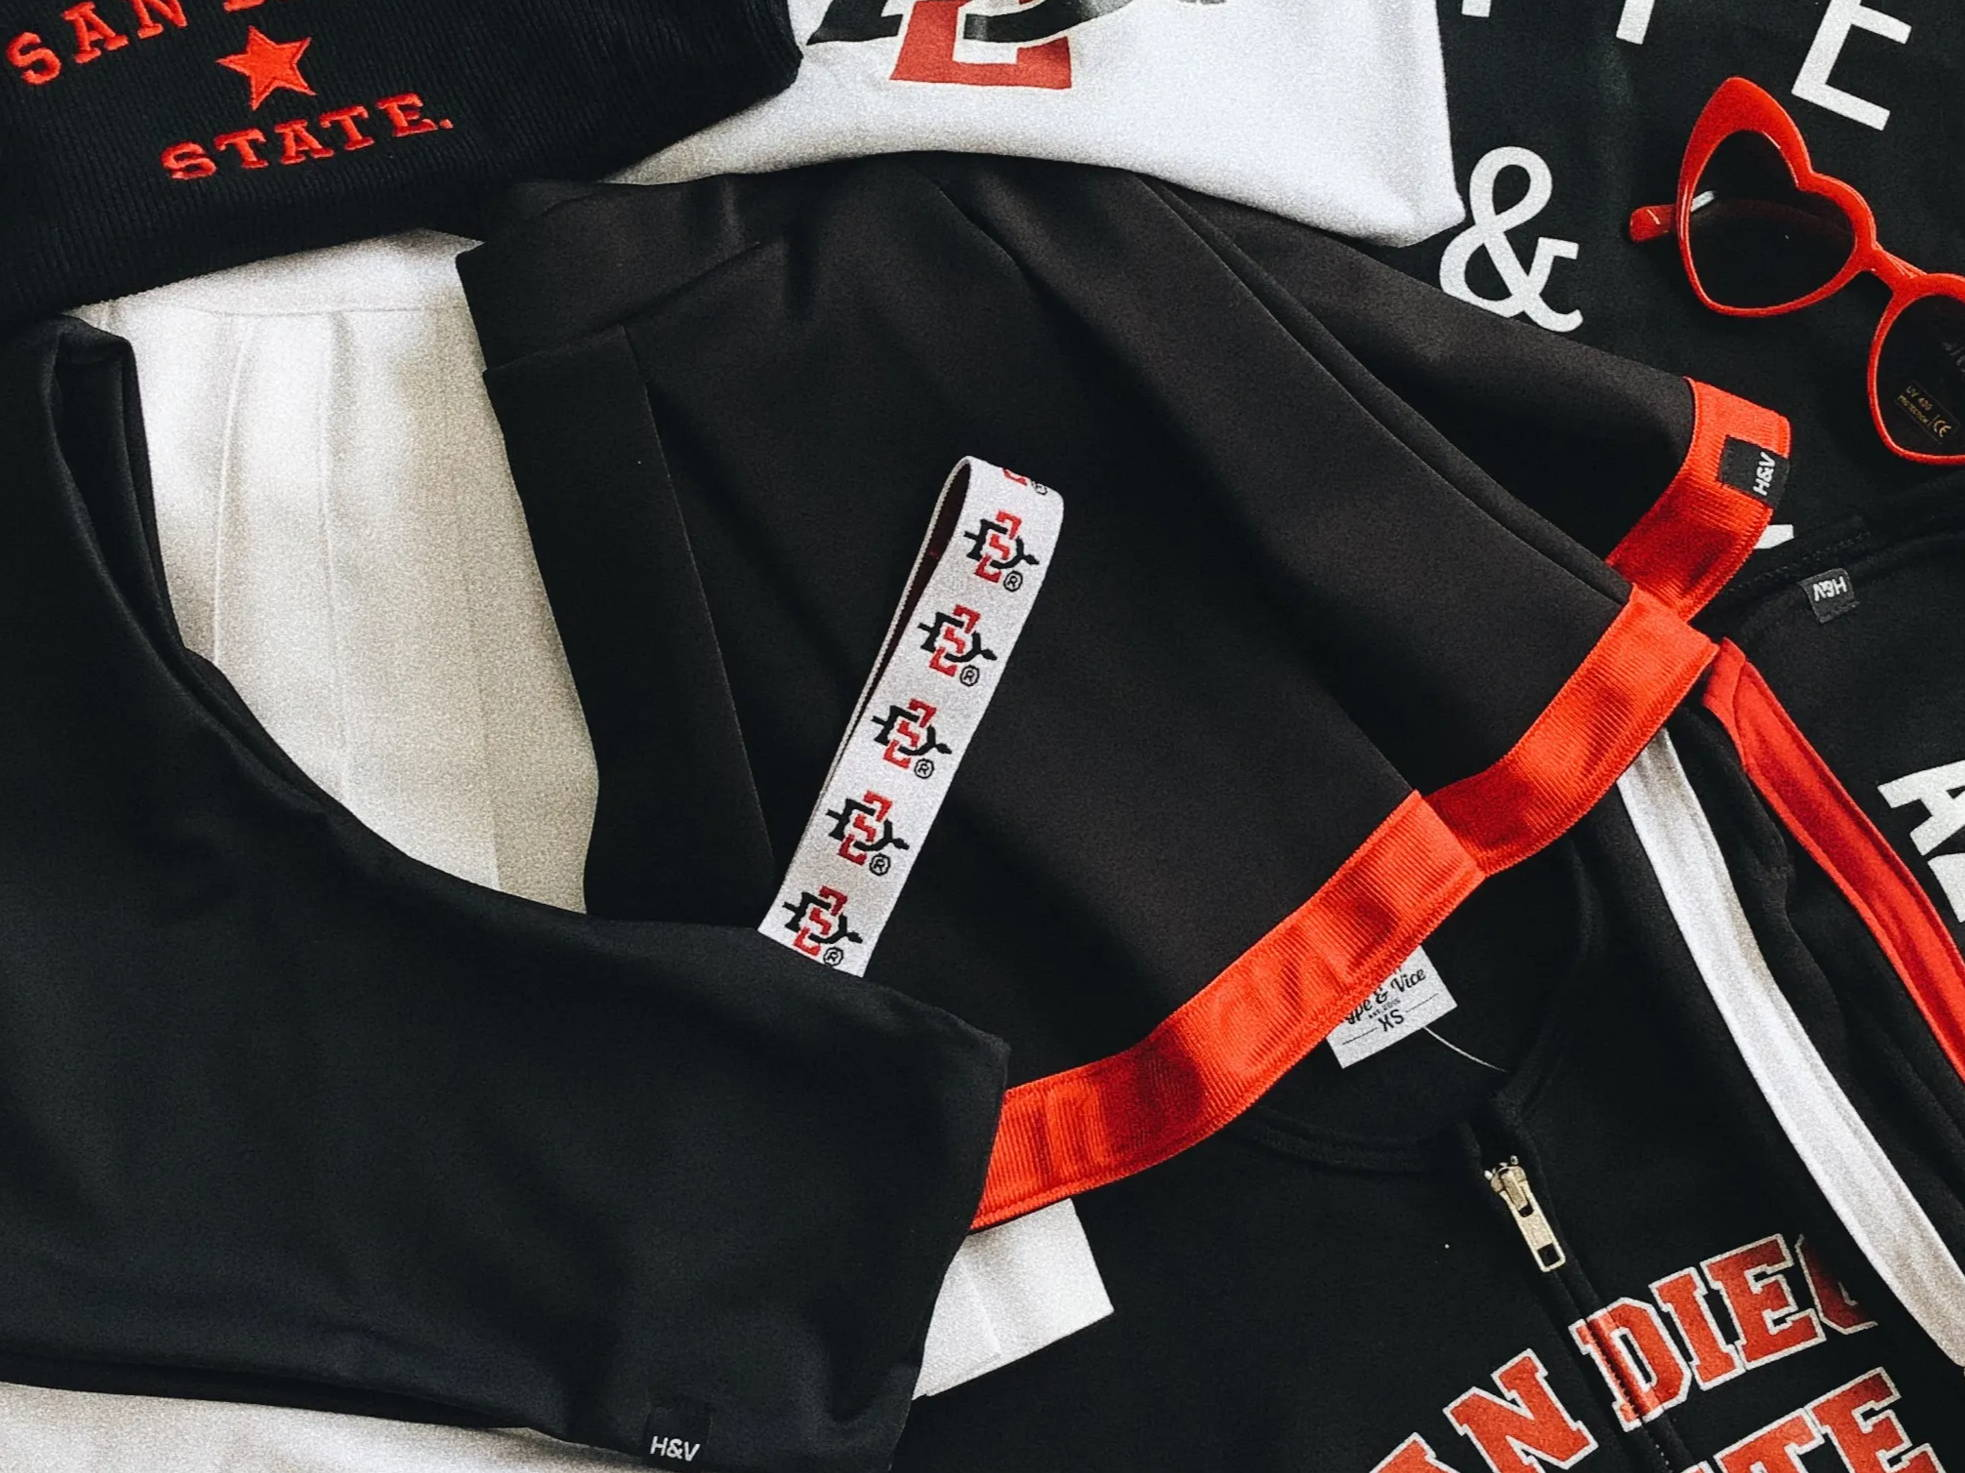 San Diego State college apparel for women. Cute and trendy!